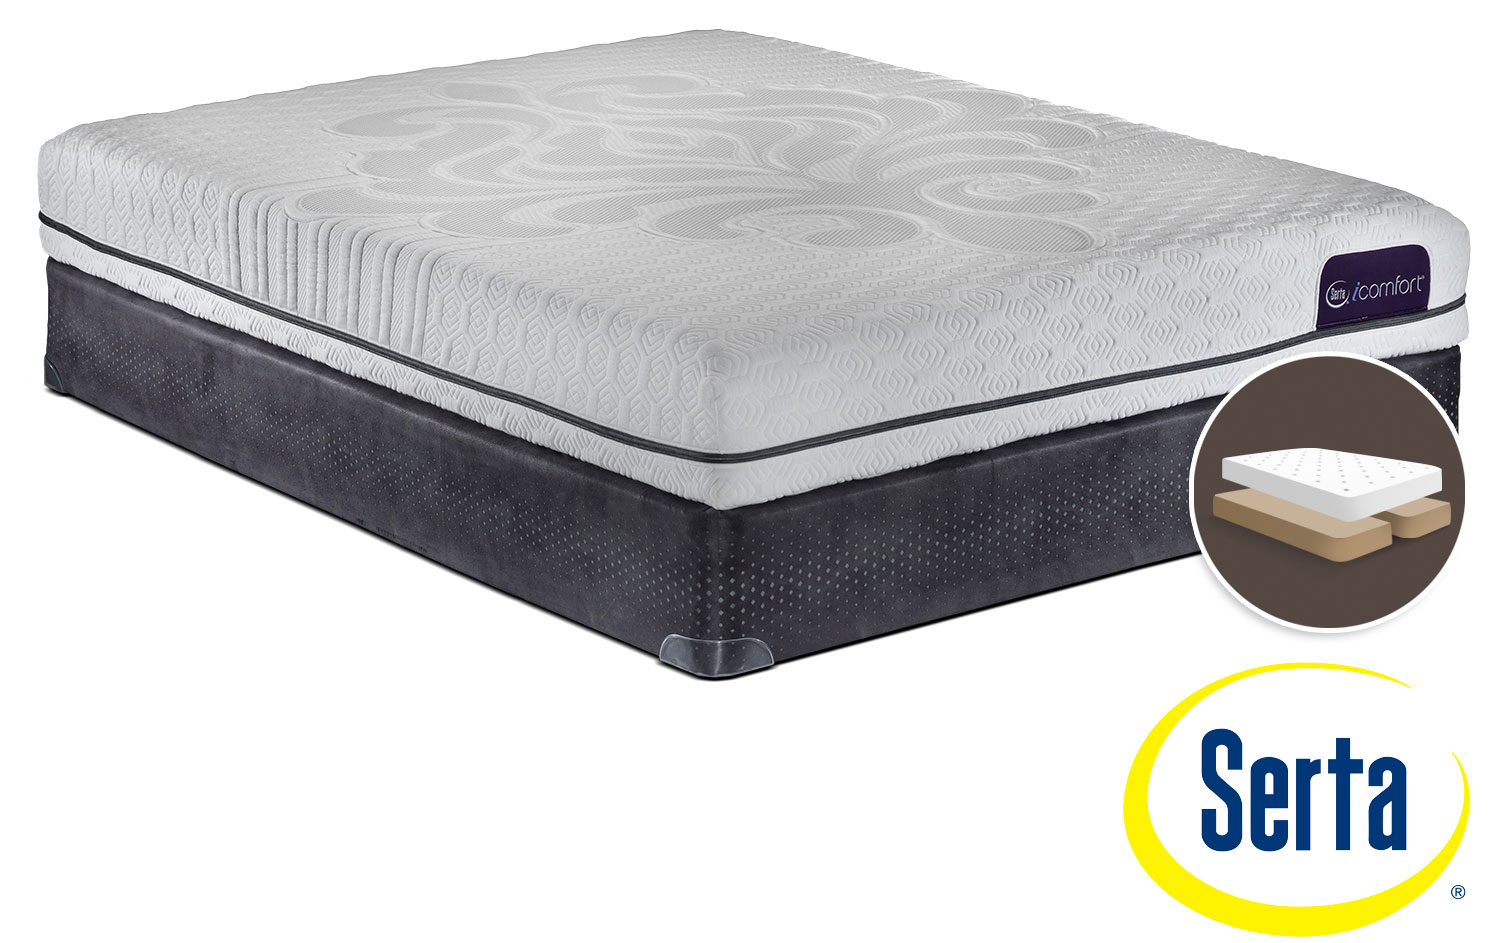 Serta iComfort Eco Levity Firm King Mattress and Split Boxspring Set